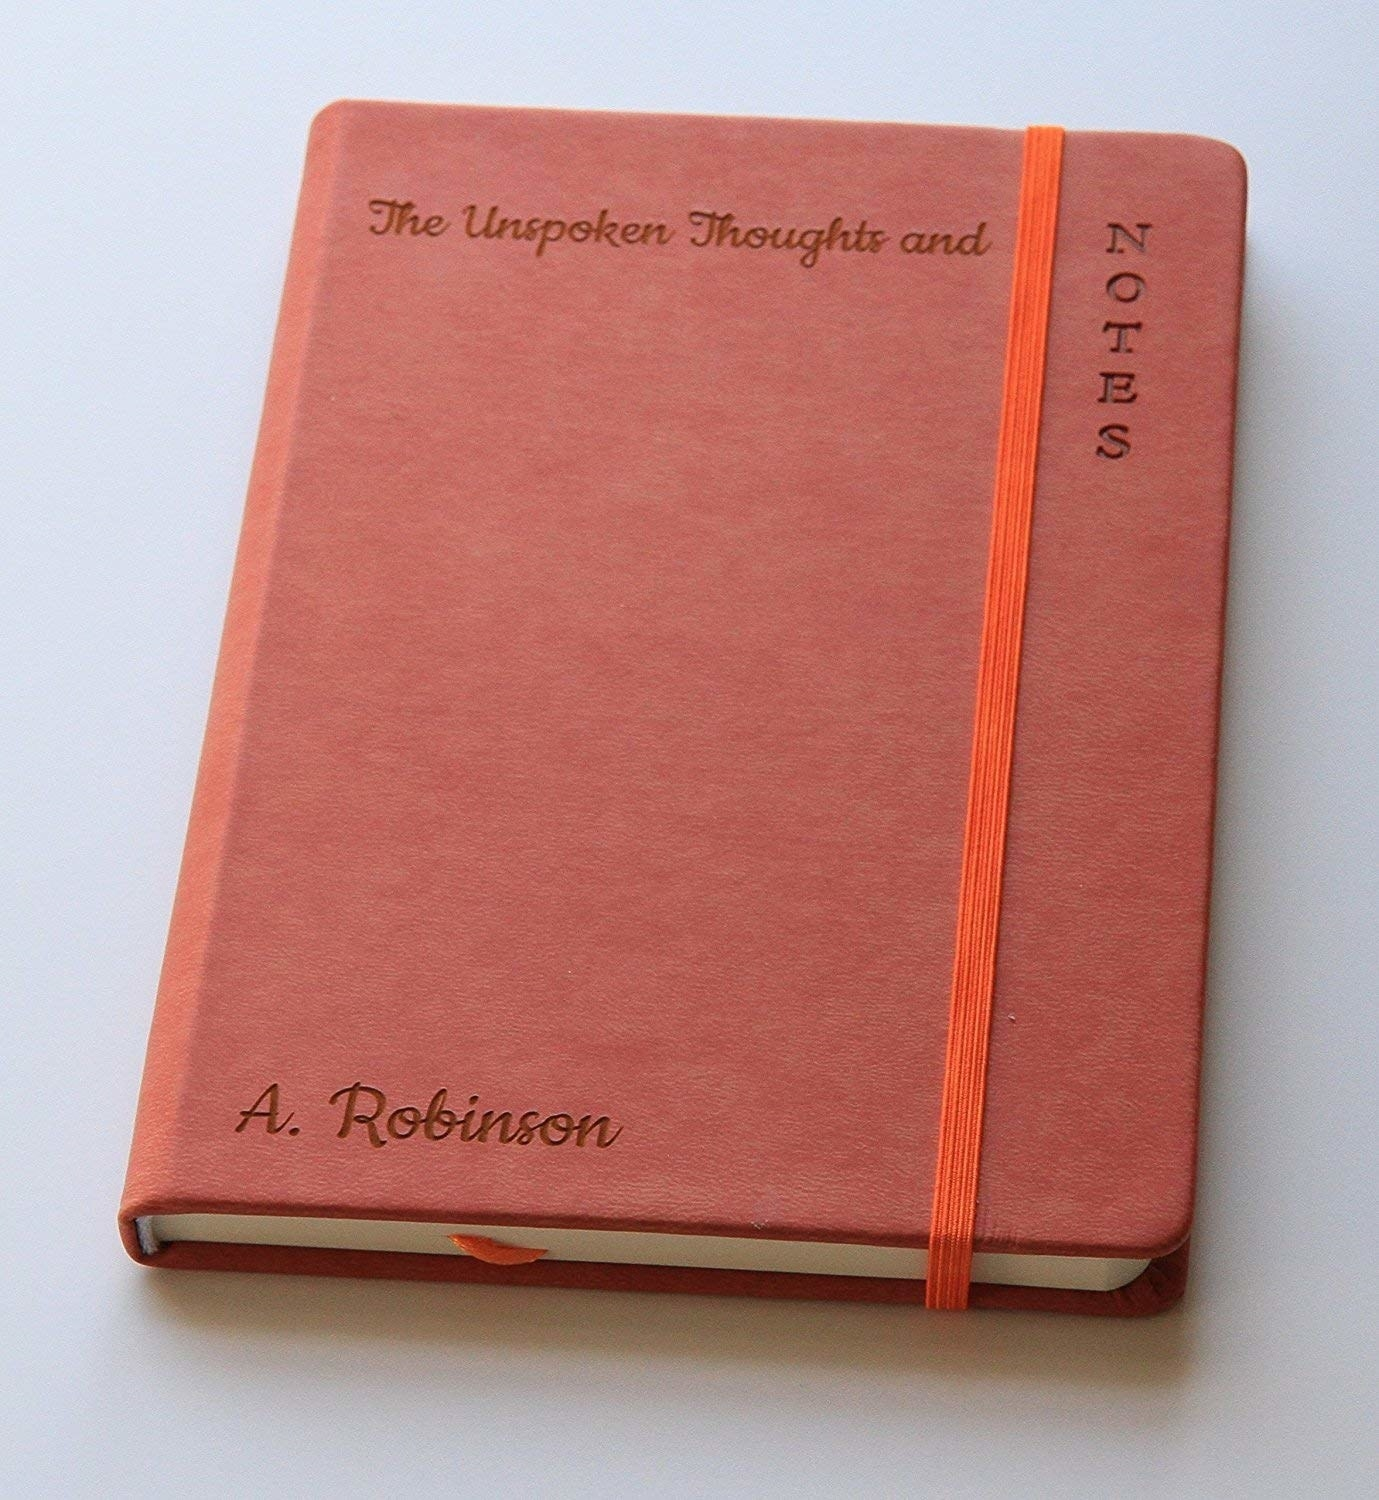 moleskine-like notebook that has an engraved name